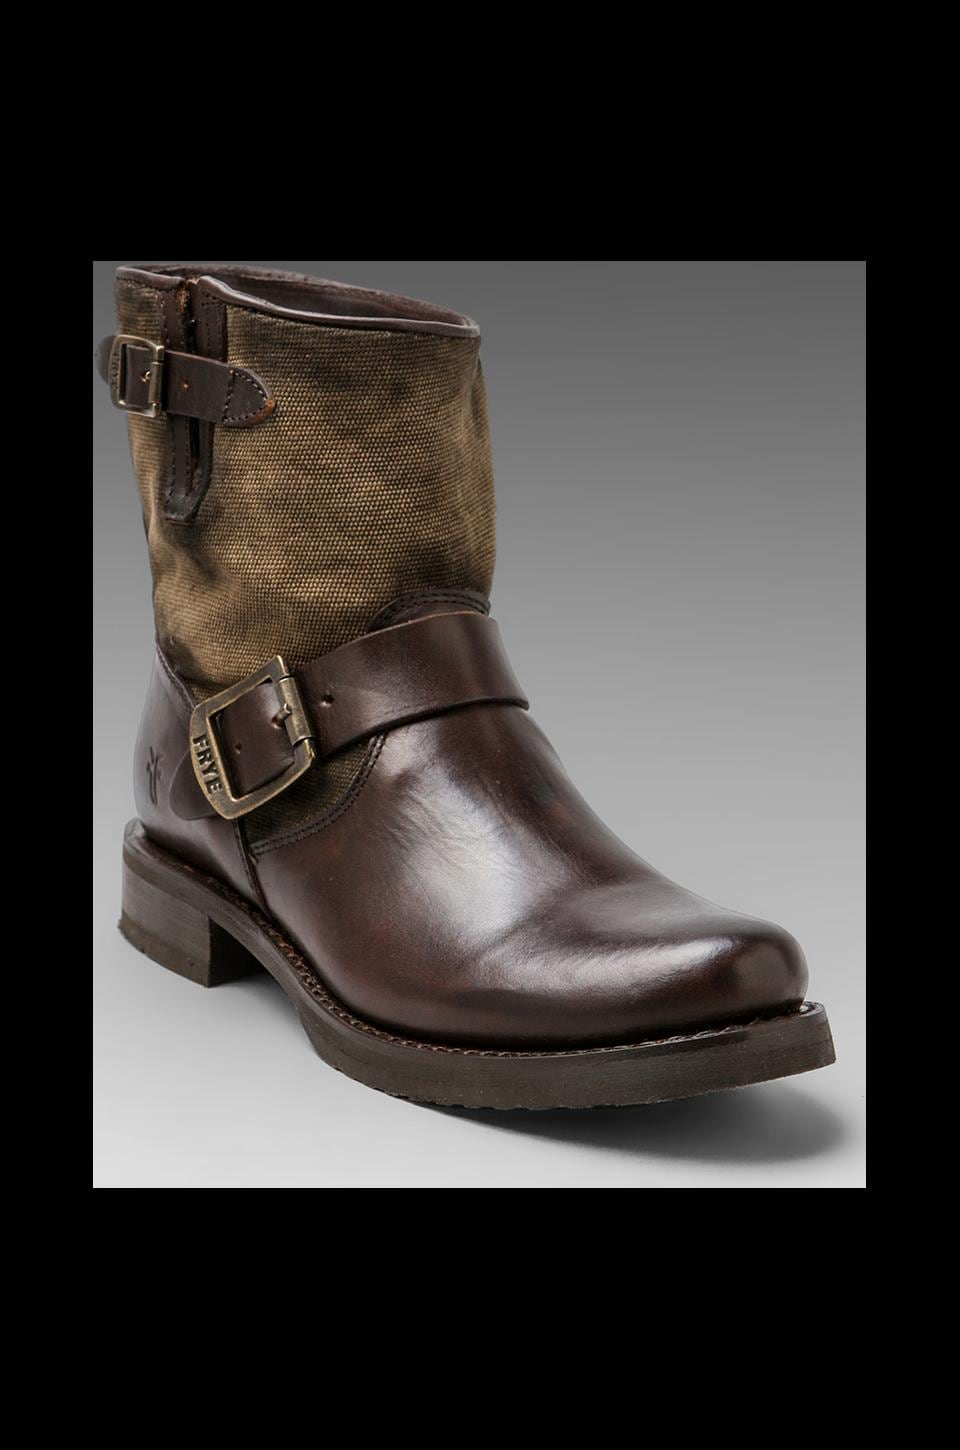 Frye Veronica Canvas Shortie Boot in Dark Brown